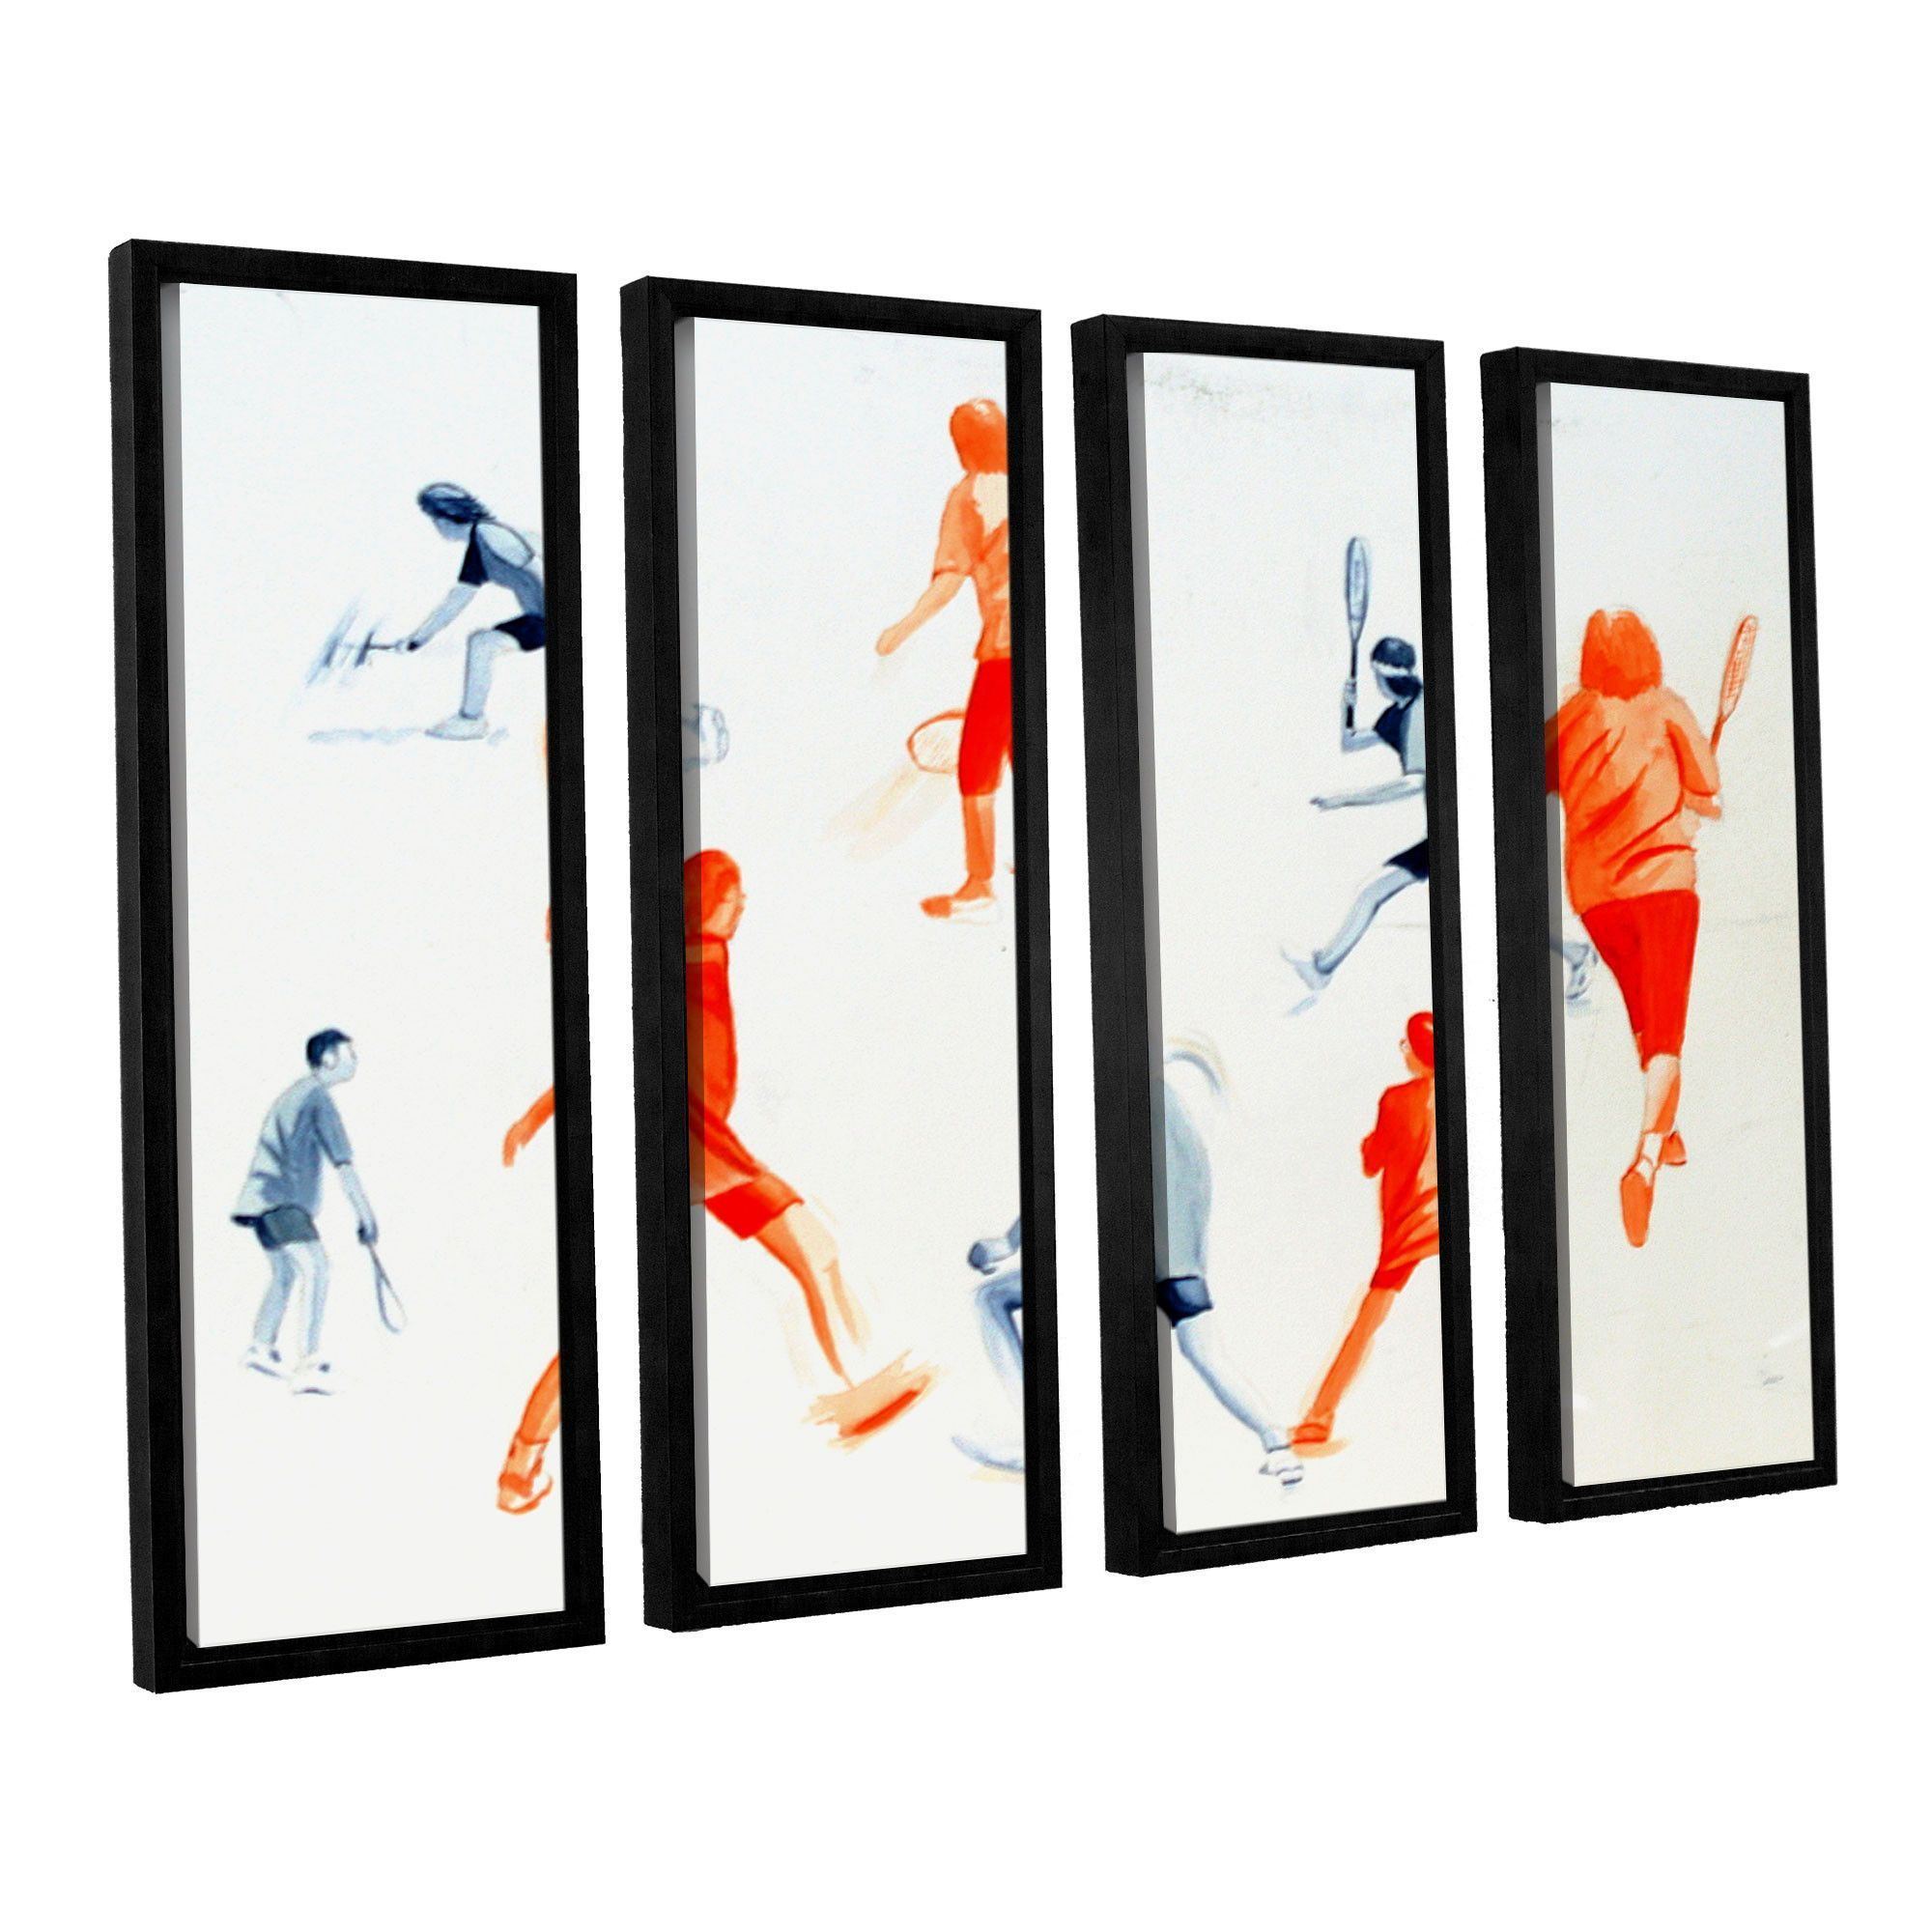 Swuahs Players by Lindsey Janich 4 Piece Floater Framed Canvas Set